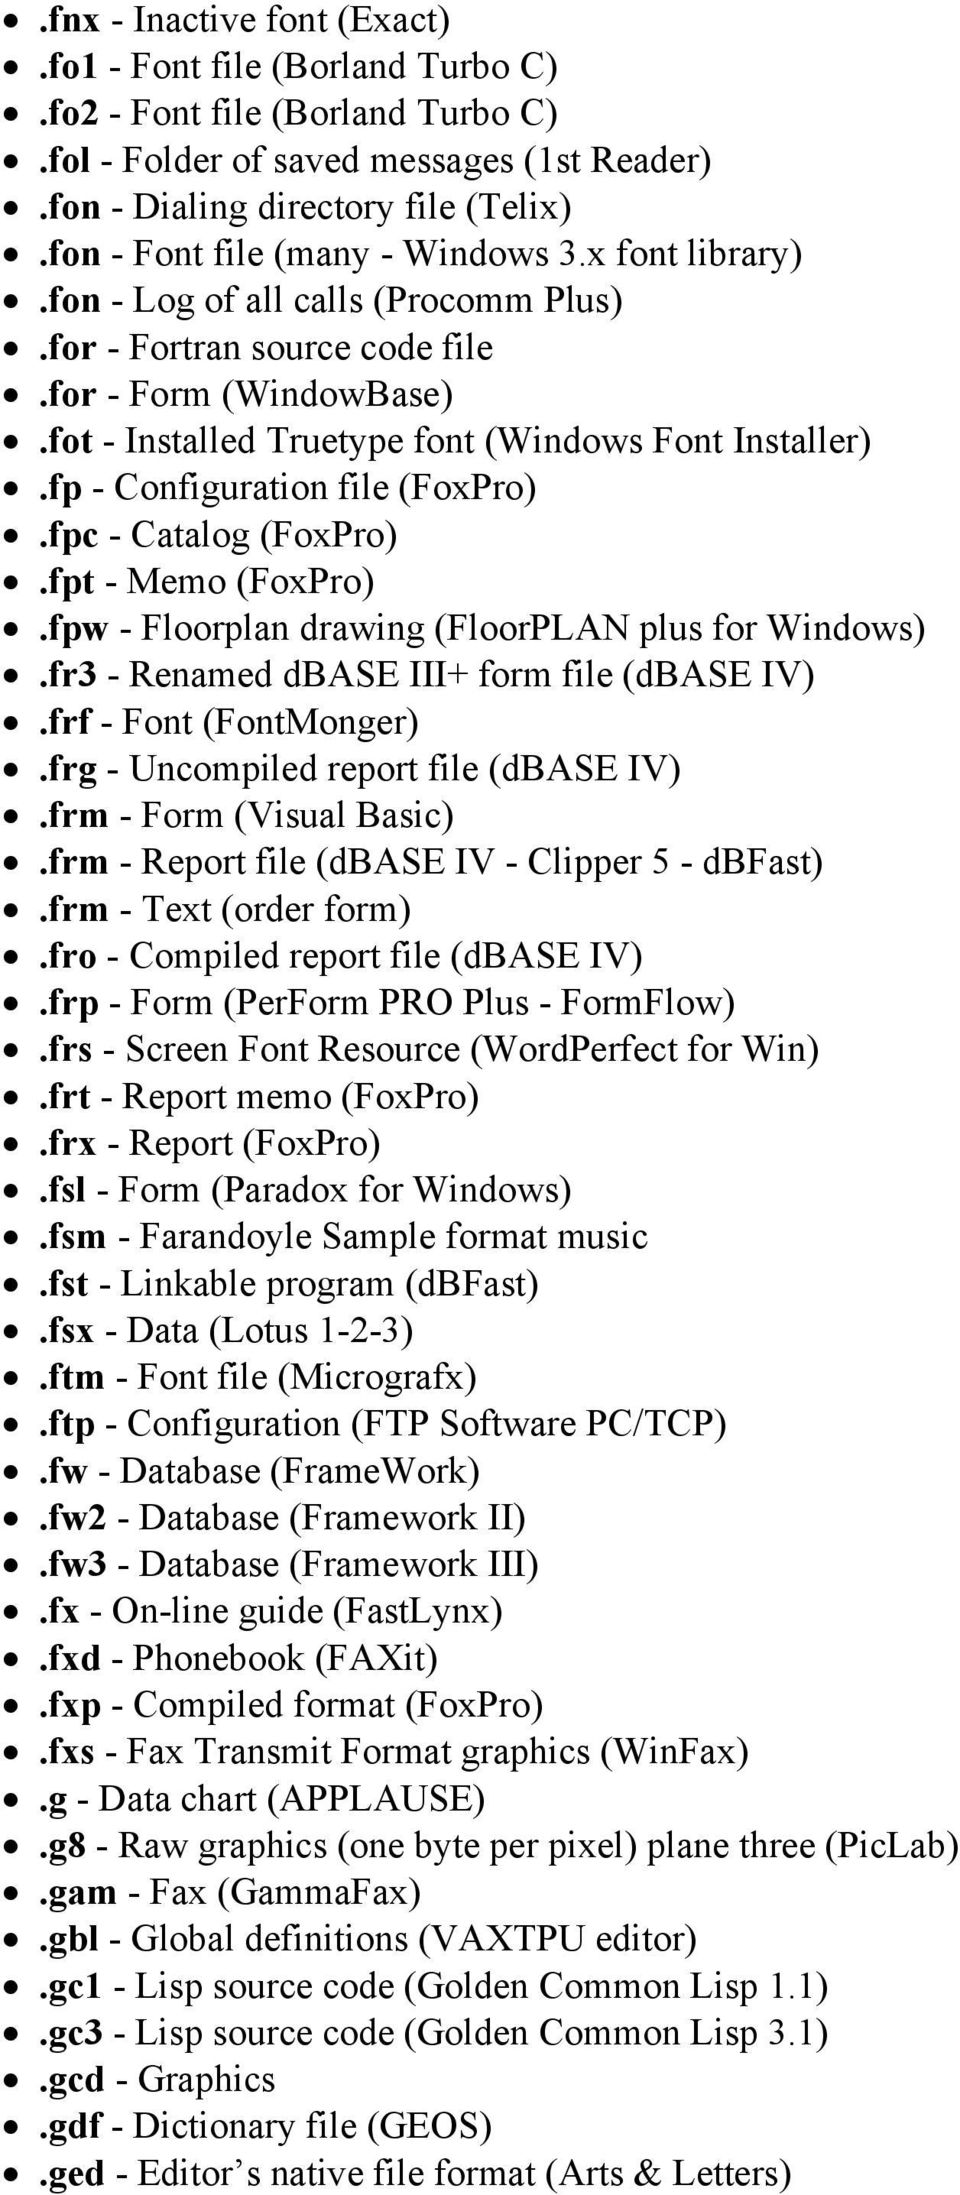 fp - Configuration file (FoxPro).fpc - Catalog (FoxPro).fpt - Memo (FoxPro).fpw - Floorplan drawing (FloorPLAN plus for Windows).fr3 - Renamed dbase III+ form file (dbase IV).frf - Font (FontMonger).